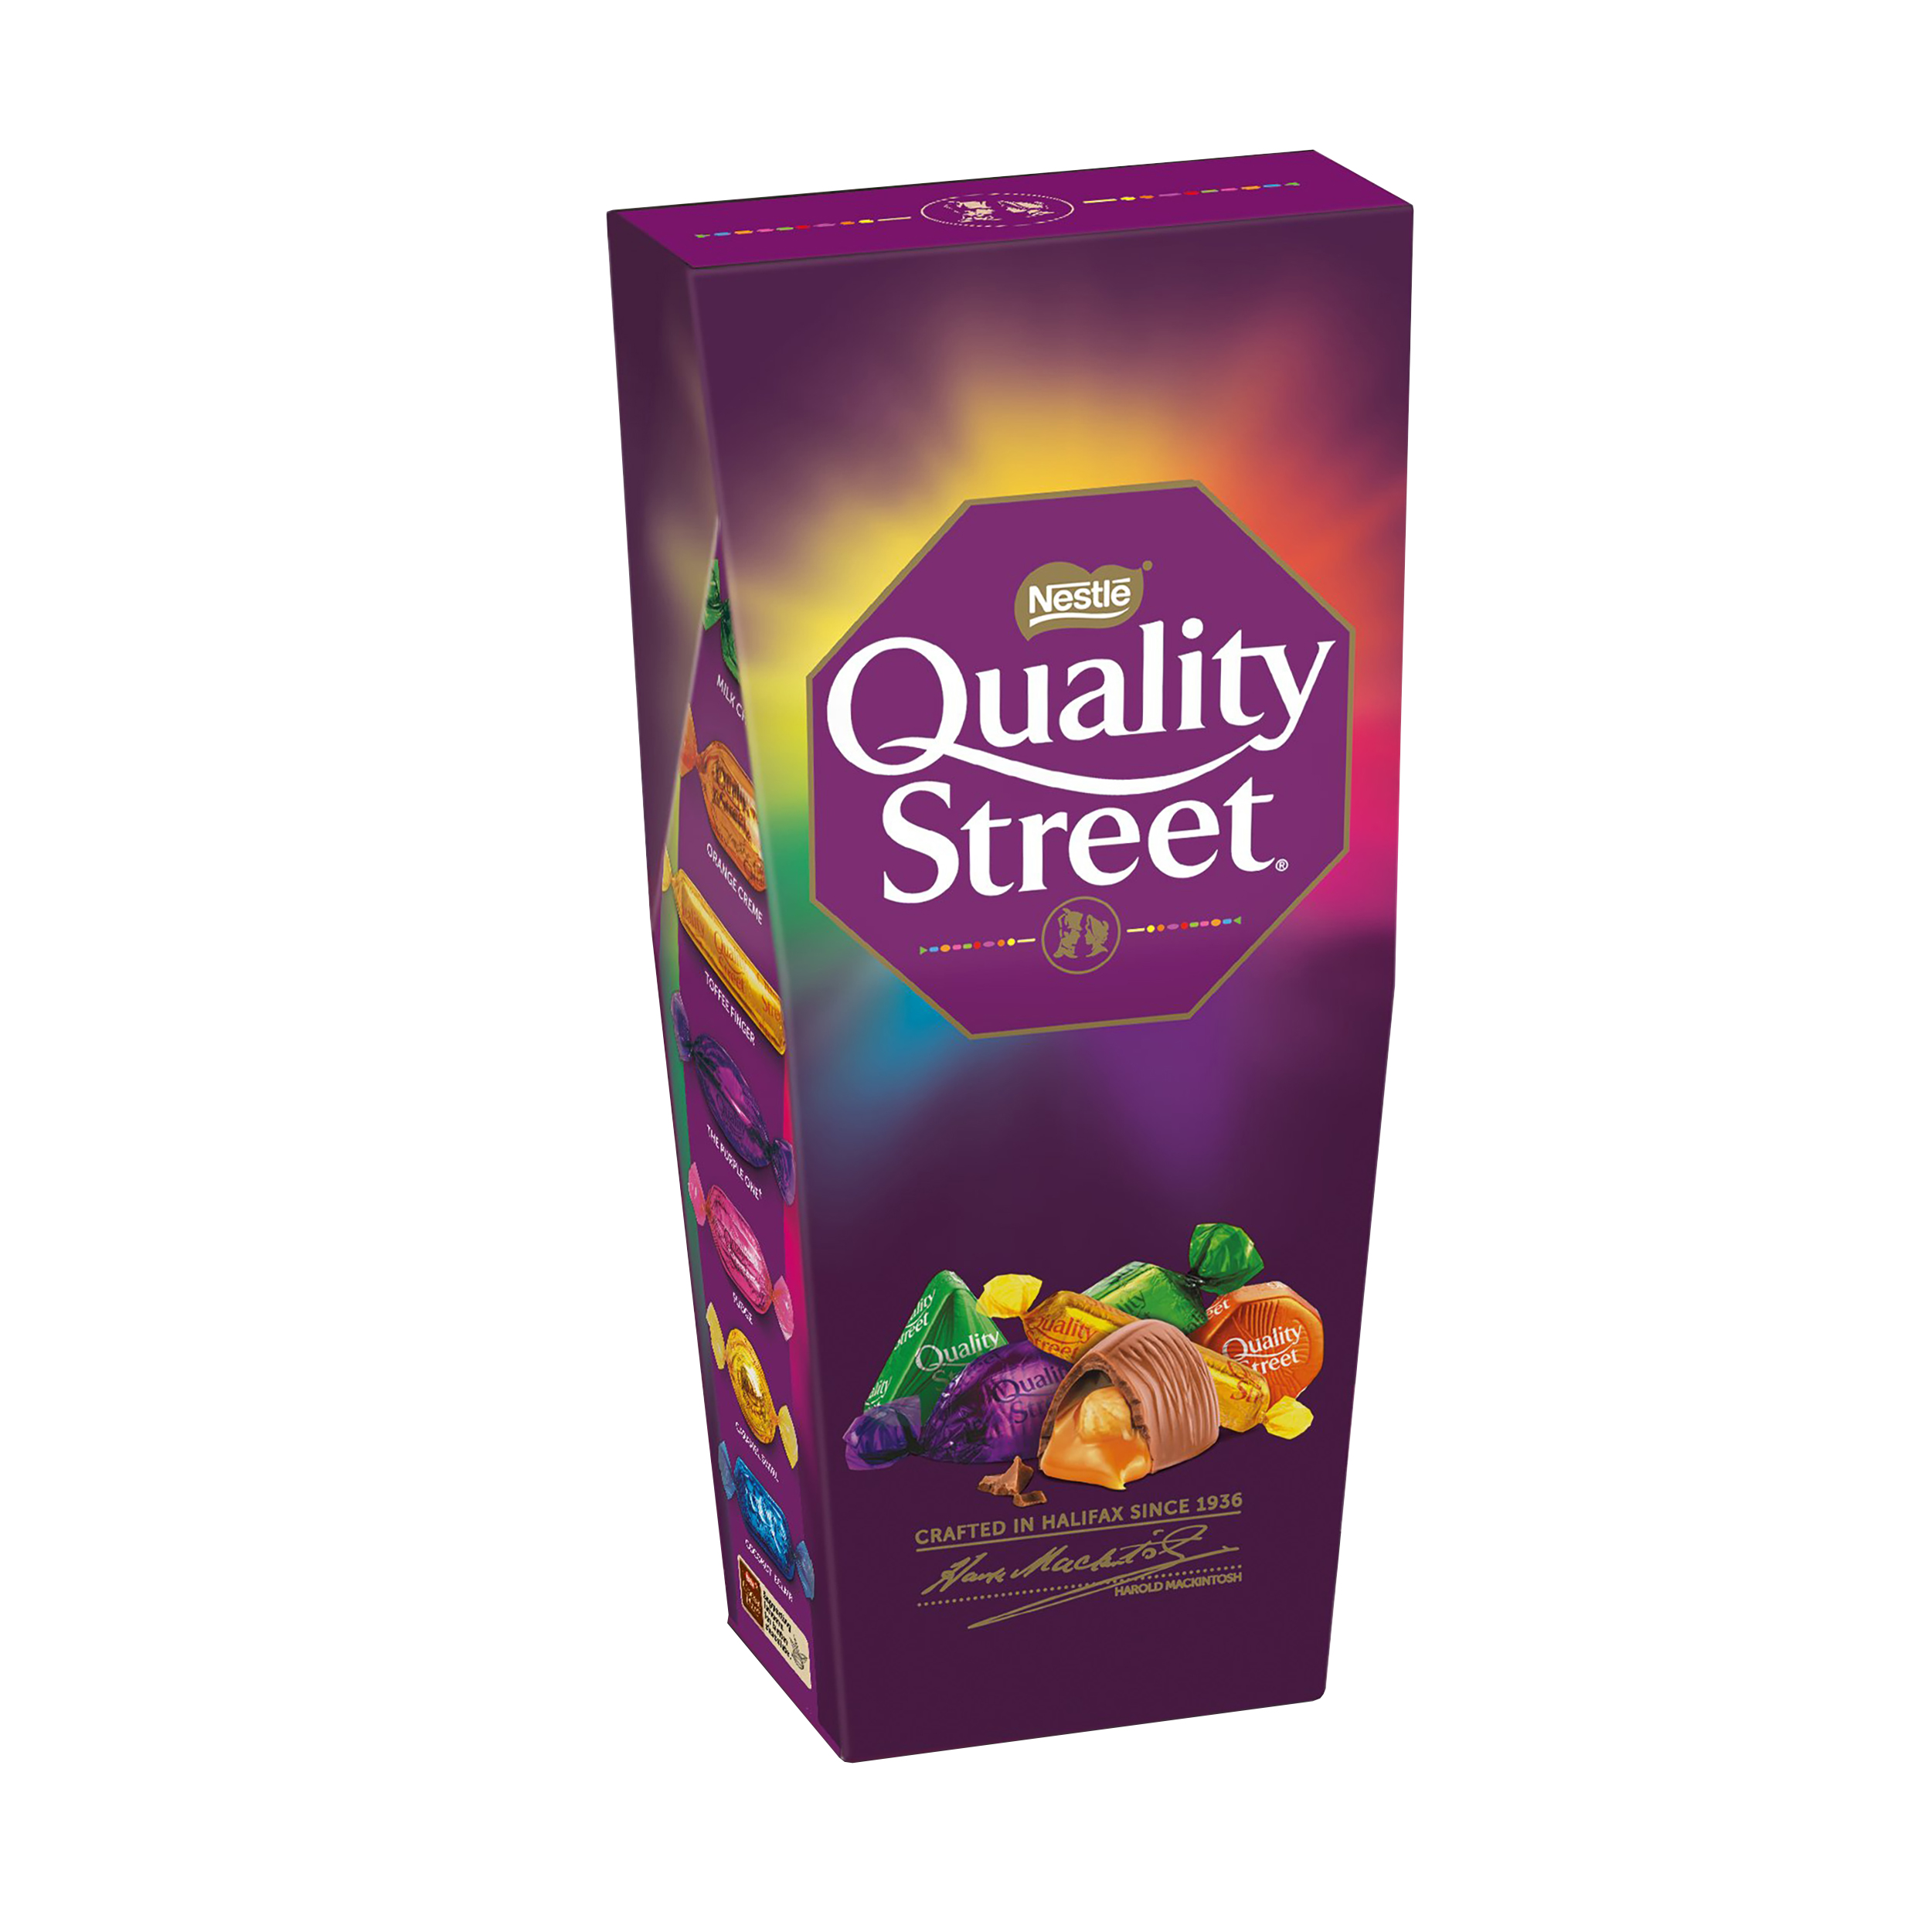 Sweets / Chocolate Nestle Quality Street Assorted Chocolates Box 240g Ref 12394661